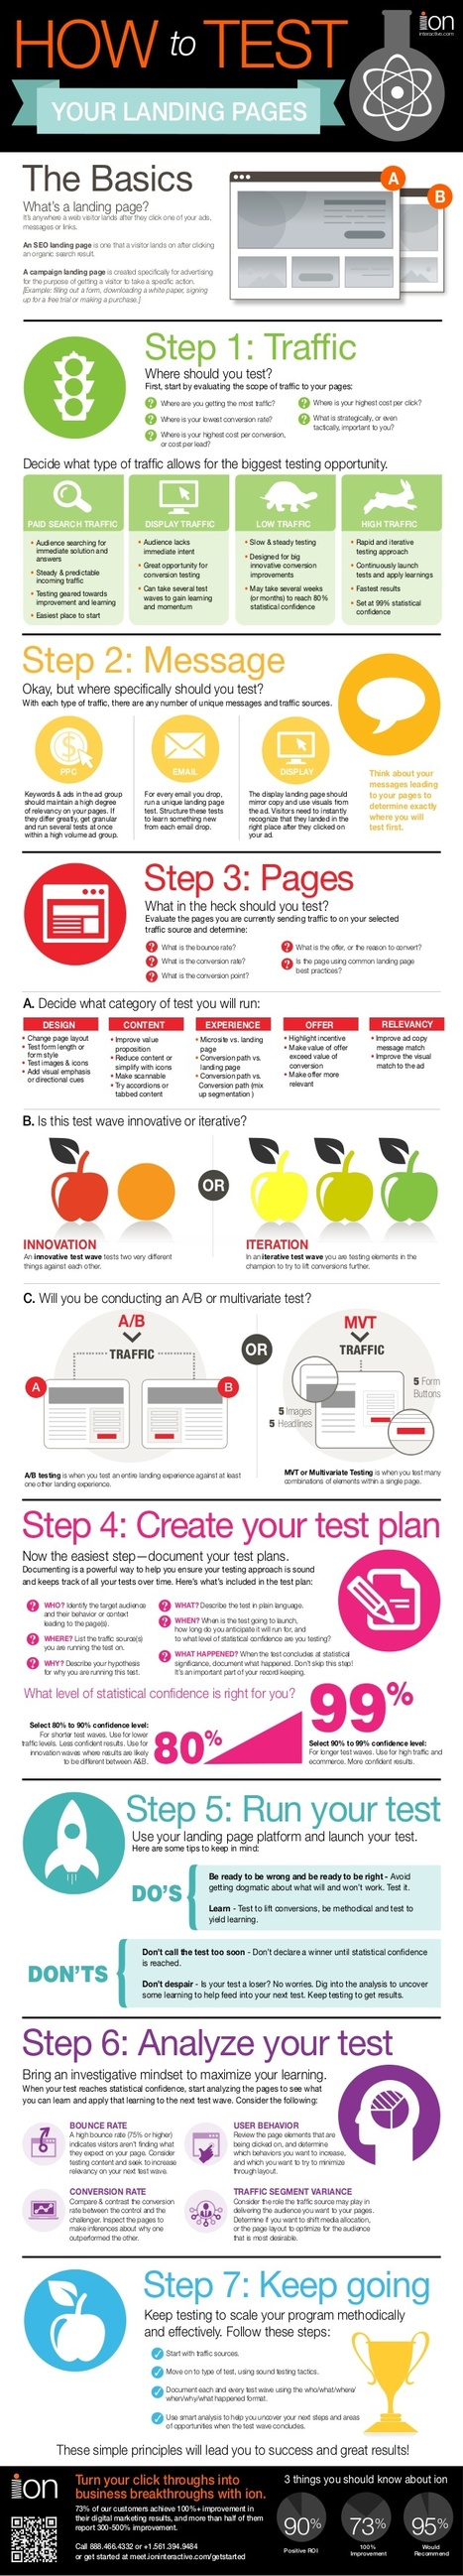 7 Steps to Landing Page Testing Success [Infographic] | Inbound marketing pour le B2B | Scoop.it